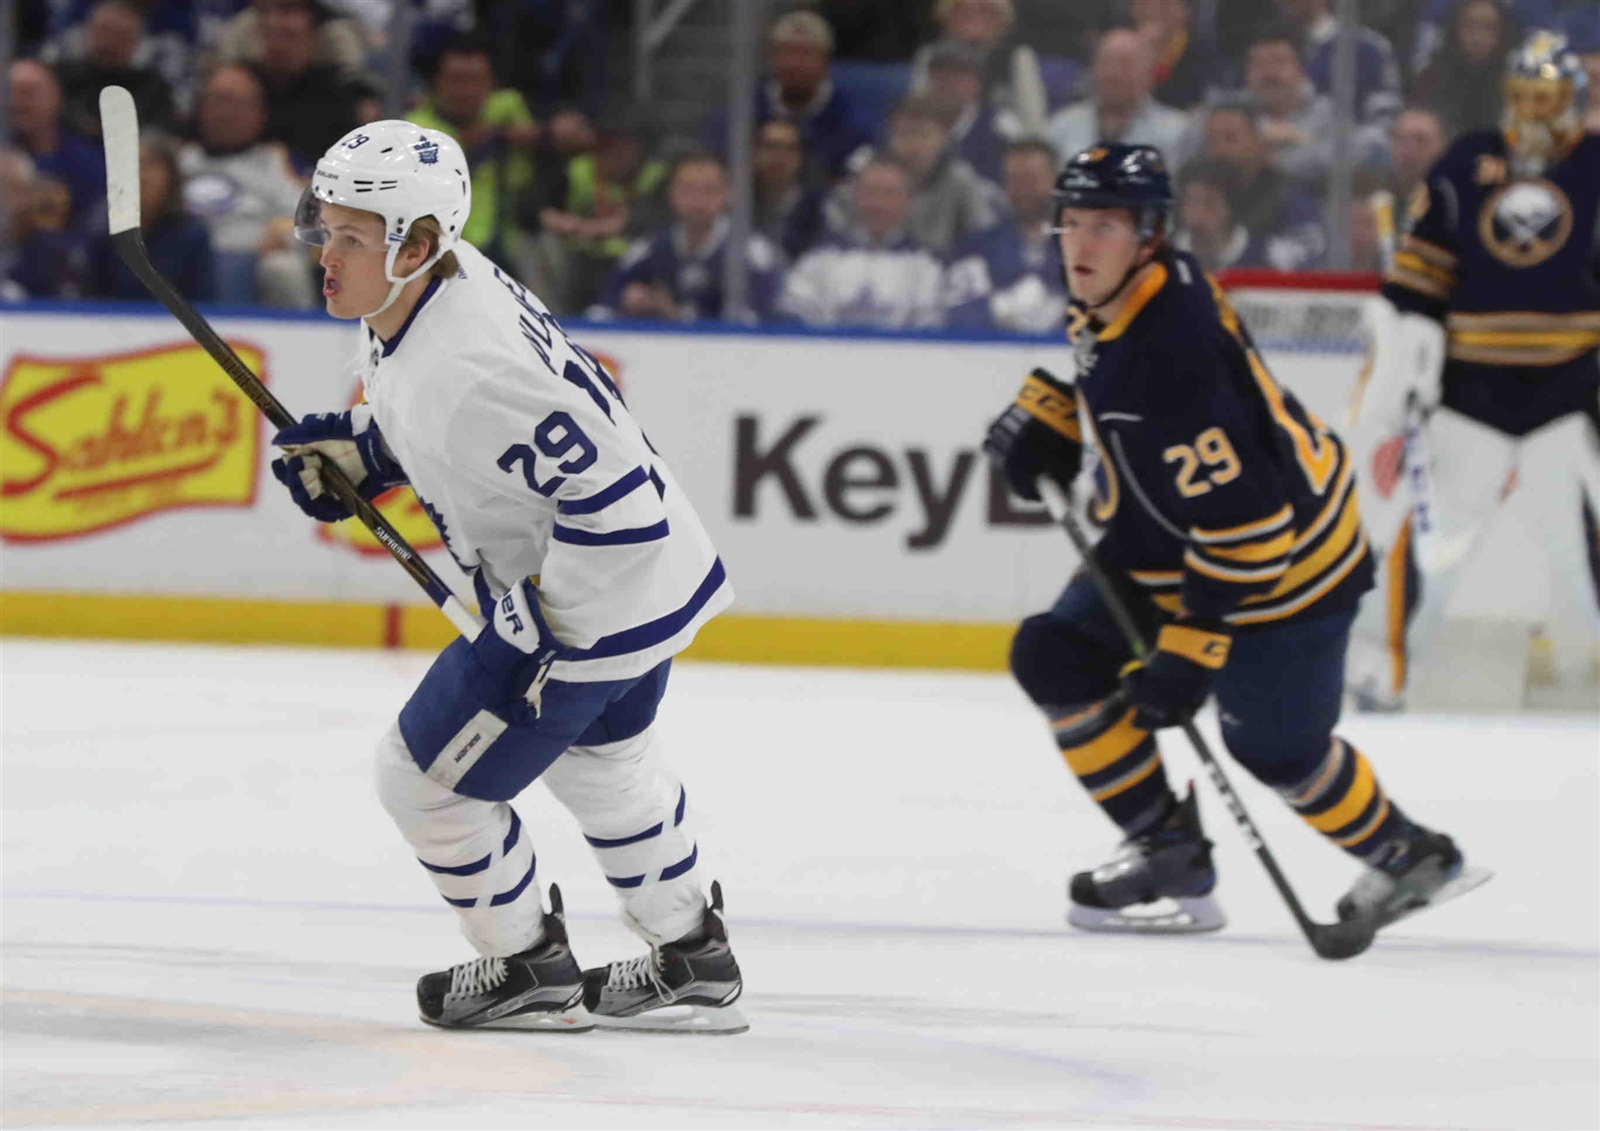 Sabres defenseman Jake McCabe, following Toronto's William Nylander, is minus-12 in his last 14 games. (James P. McCoy/Buffalo News)